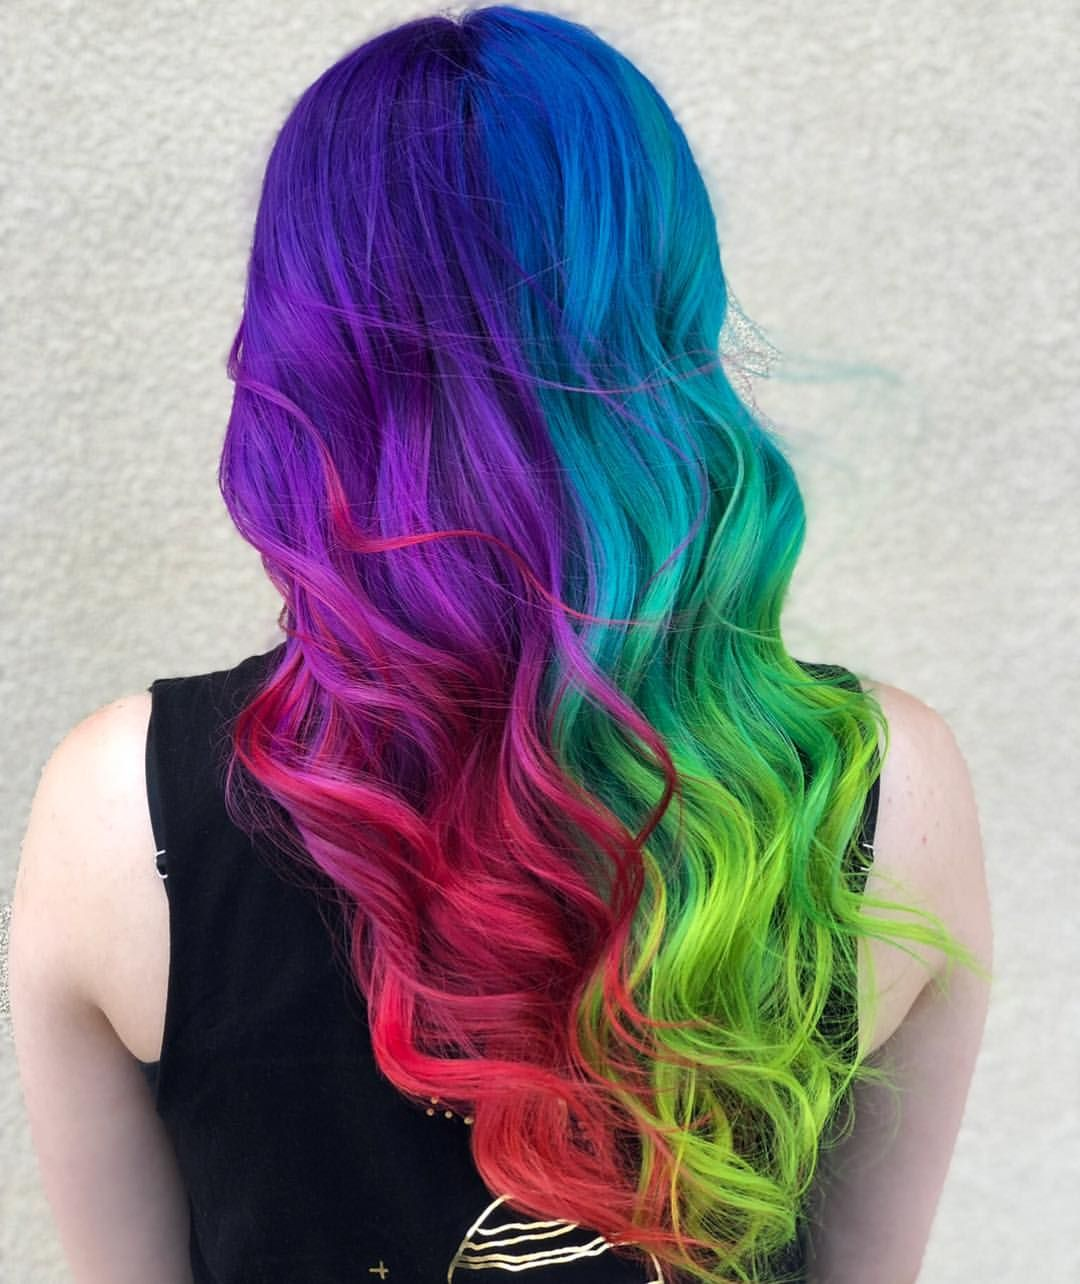 I M Really Loving This Split Hair Trend For This Mermaid Look I Used